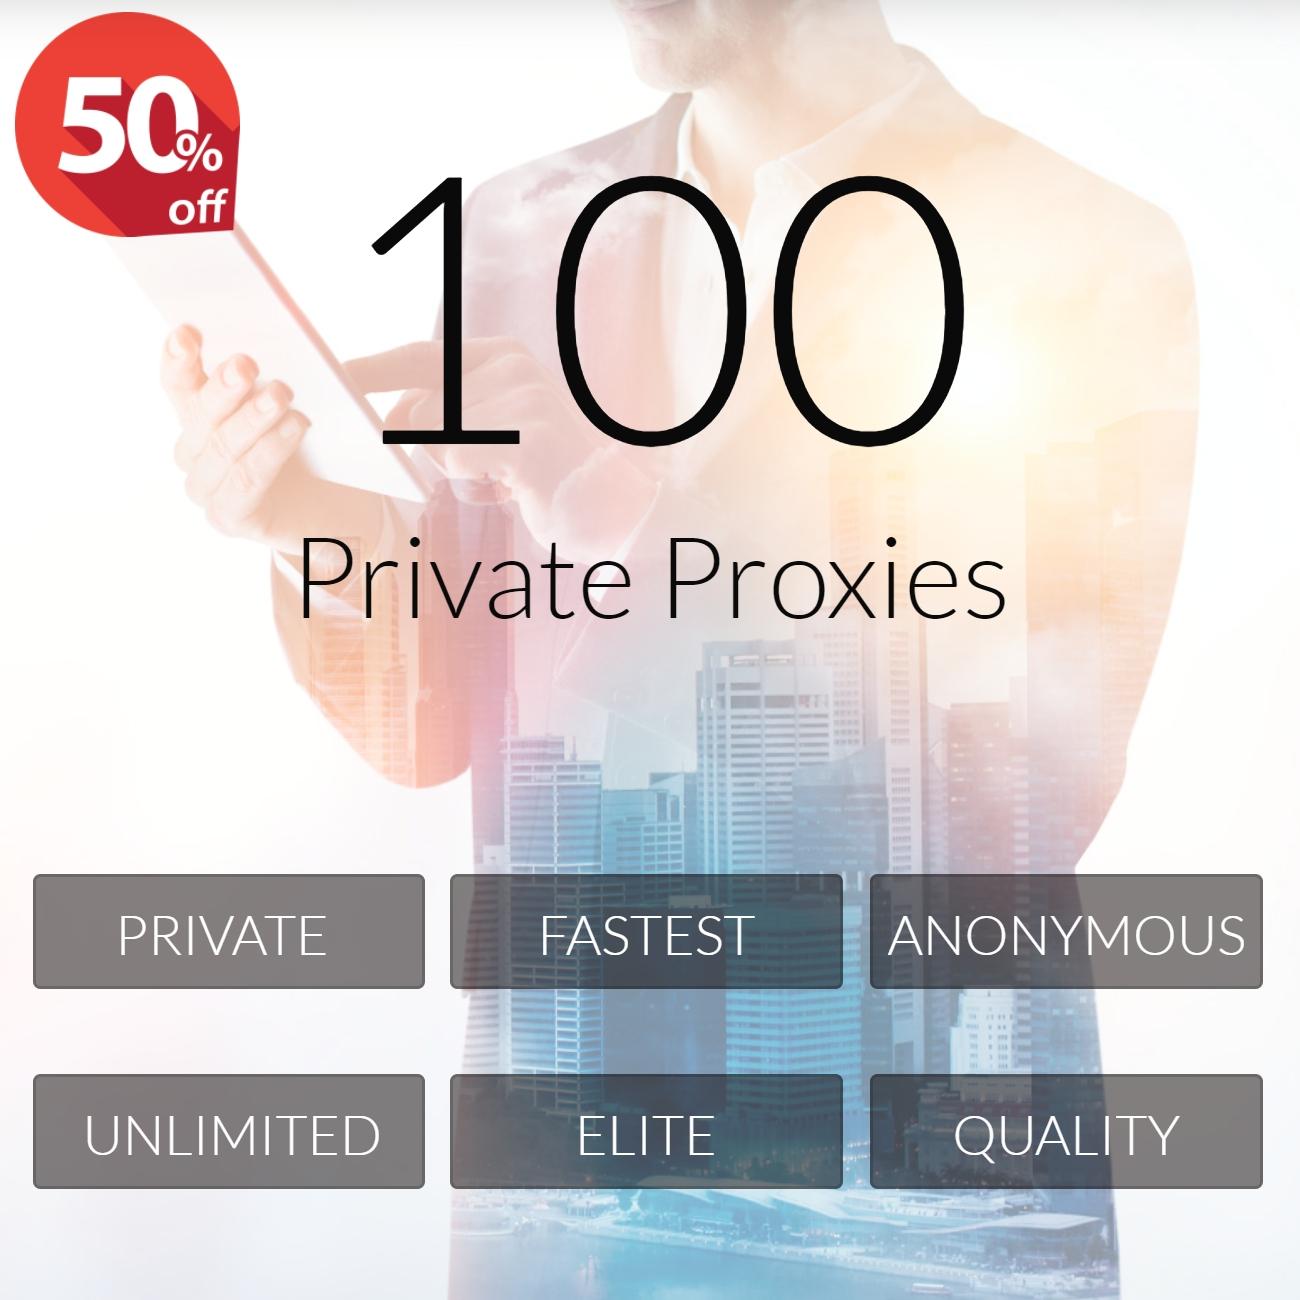 100 Private Proxies